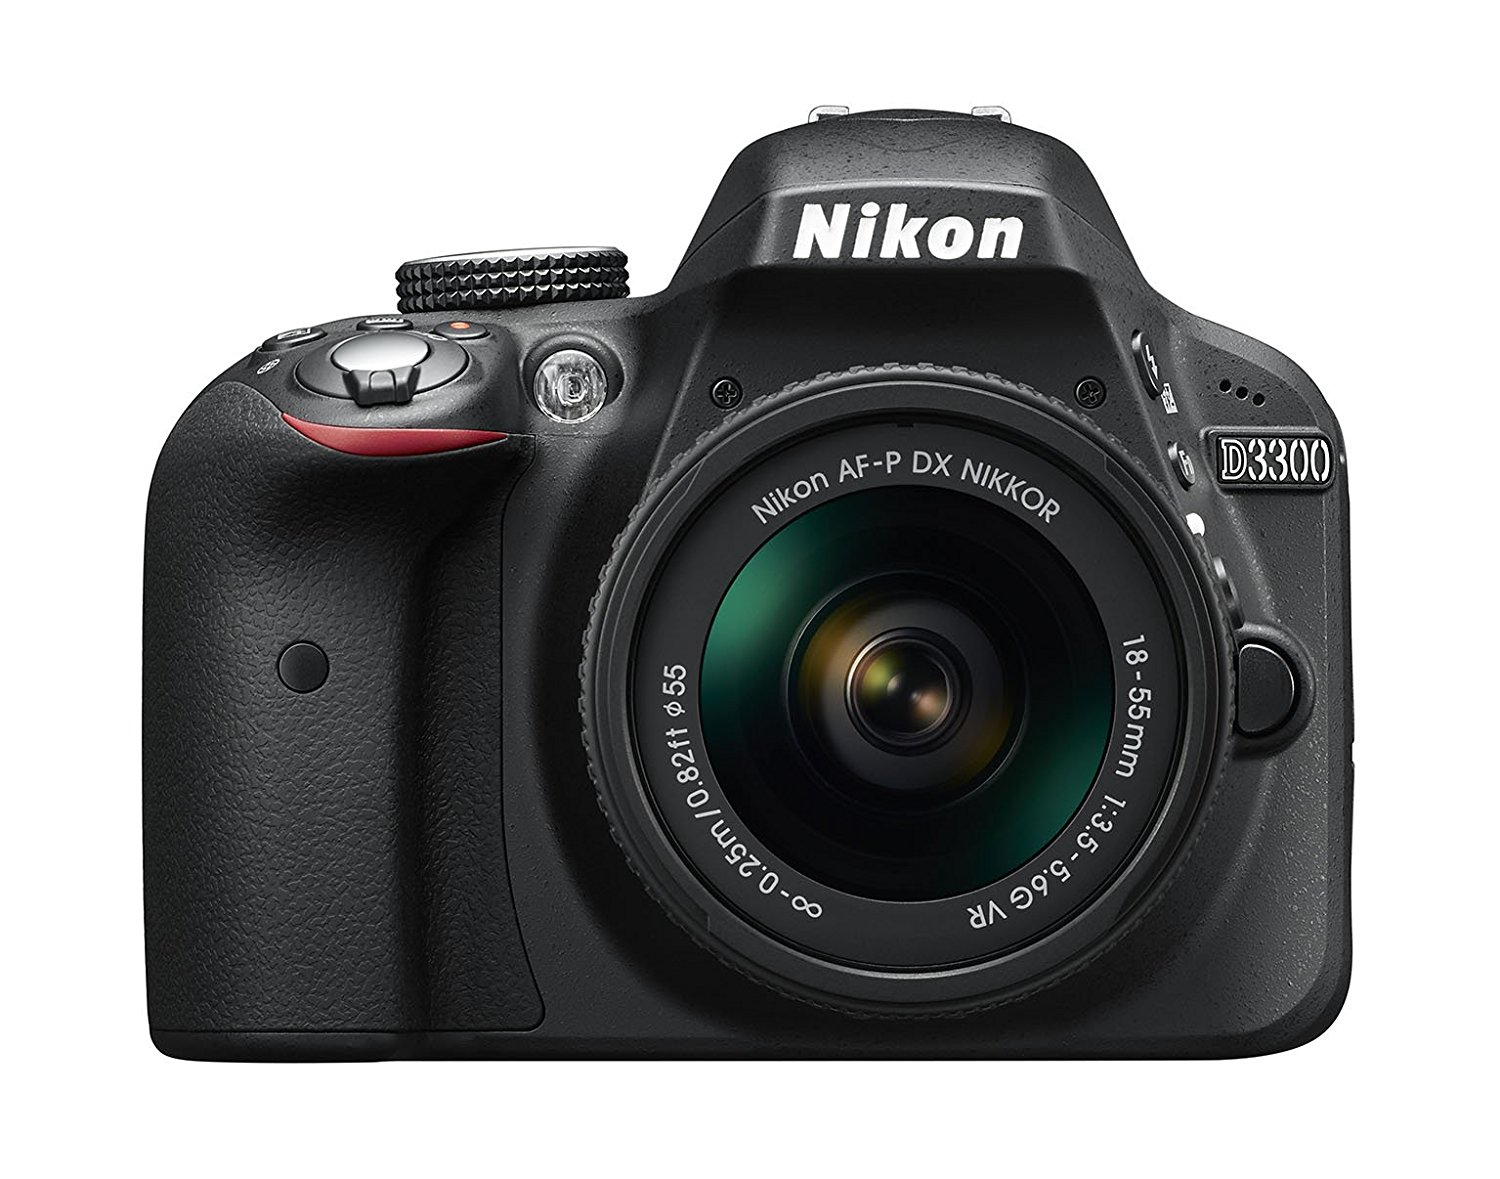 "Nikon D3300 + 18-55 AFP DX VR - Cámara réflex digital de 24,2 Mp (pantalla LCD 3"", estabilizador, vídeo Full HD), color negro - kit con objetivo 18-55MM AFP DX VR"